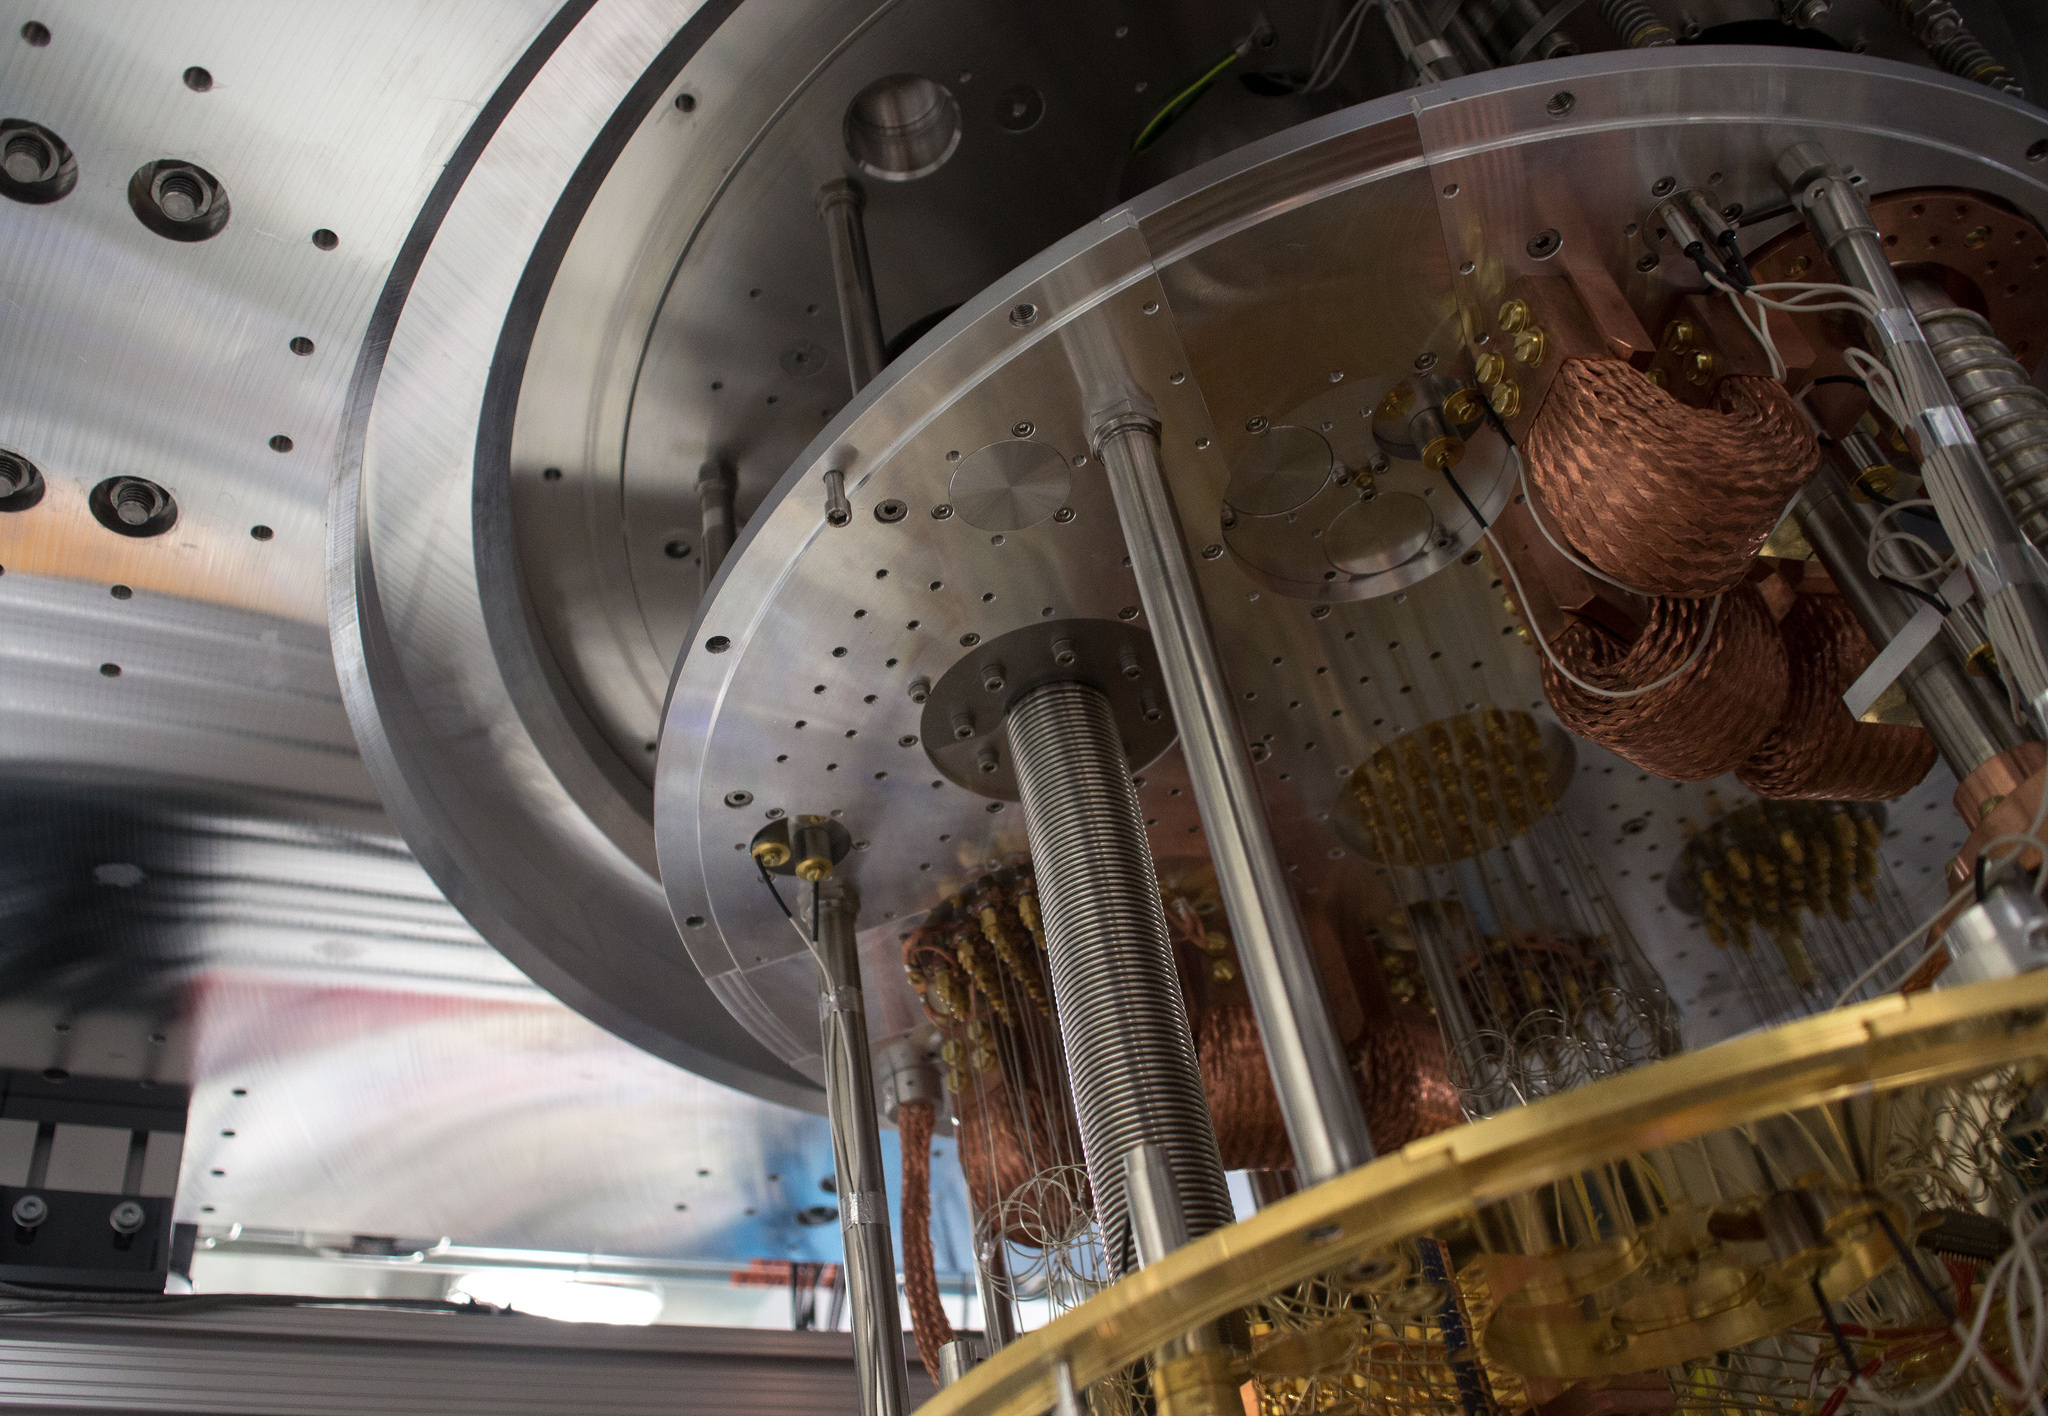 Quantum Computer Interior - Image Credit: IBM Research via flickr